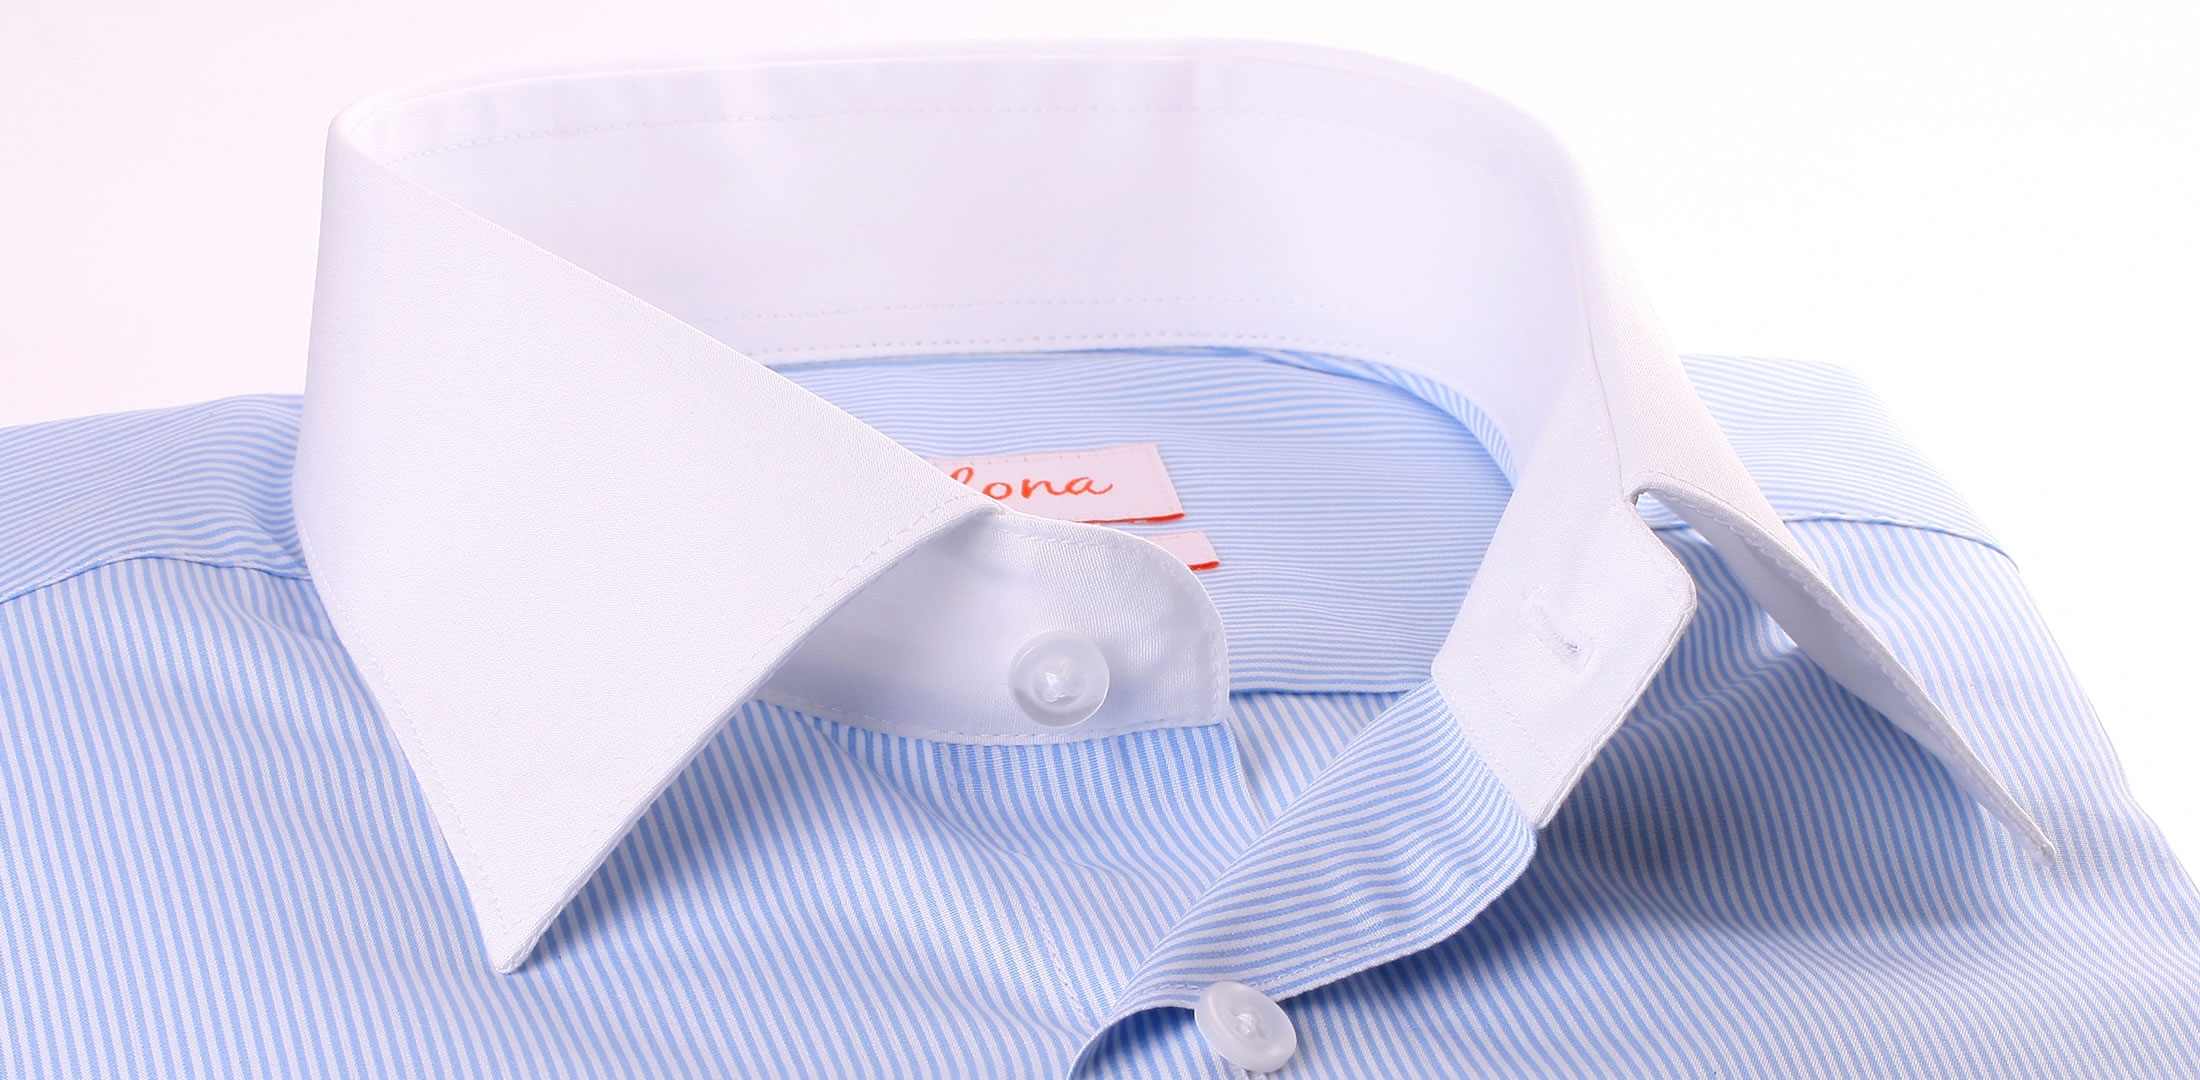 White and blue striped shirt with white collar and cuffs for Blue and white striped shirt with white collar